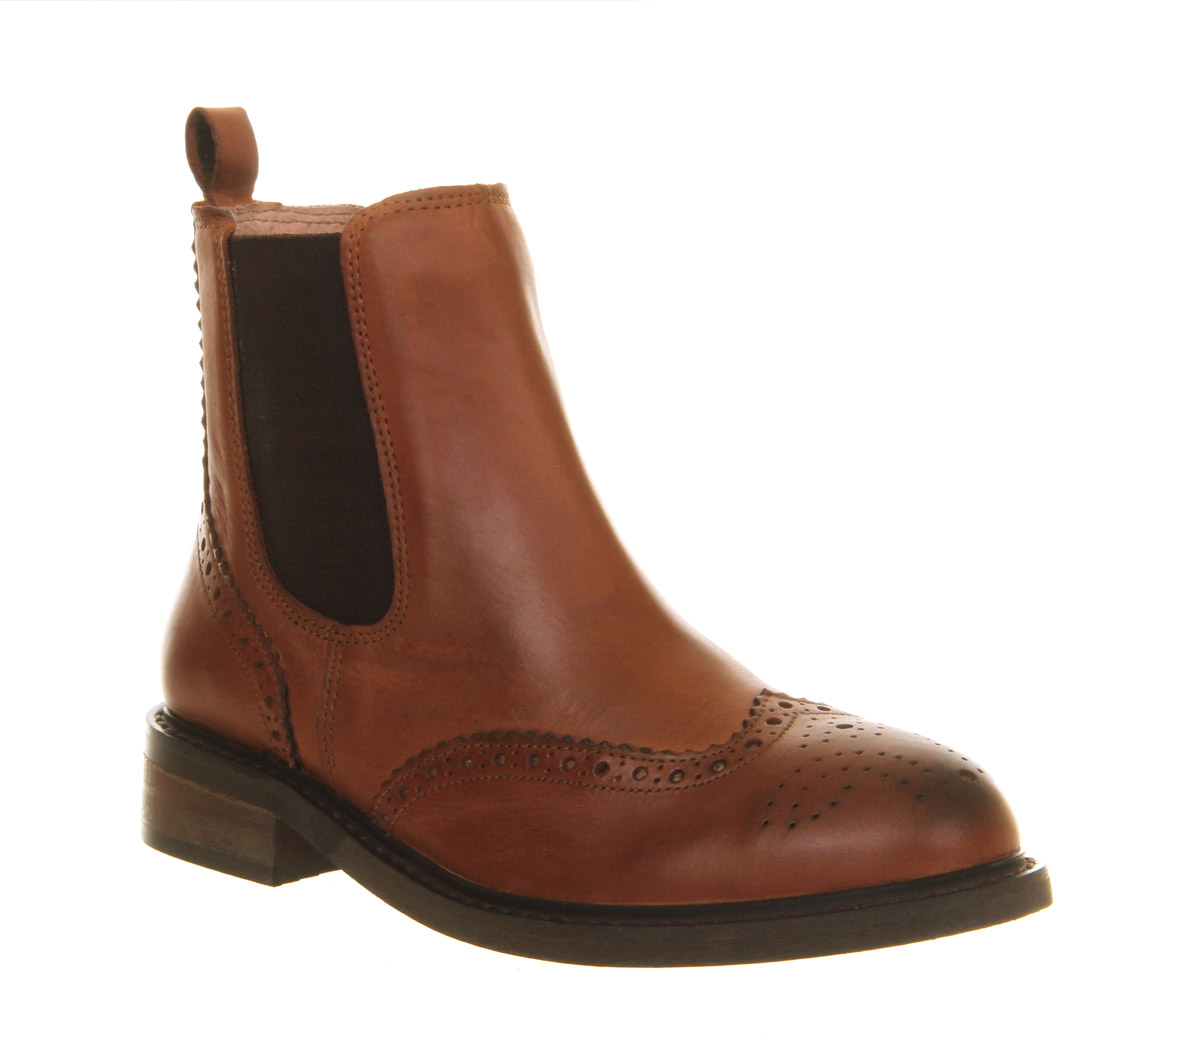 Brown Women's Boots: Find the latest styles of Shoes from autoebookj1.ga Your Online Women's Shoes Store! Get 5% in rewards with Club O! Journee Collection Women's Kendel Faux Leather Lace-up Buckle Combat Boots. 52 Reviews. SALE. More Options. Quick View. Sale $ 29 - $